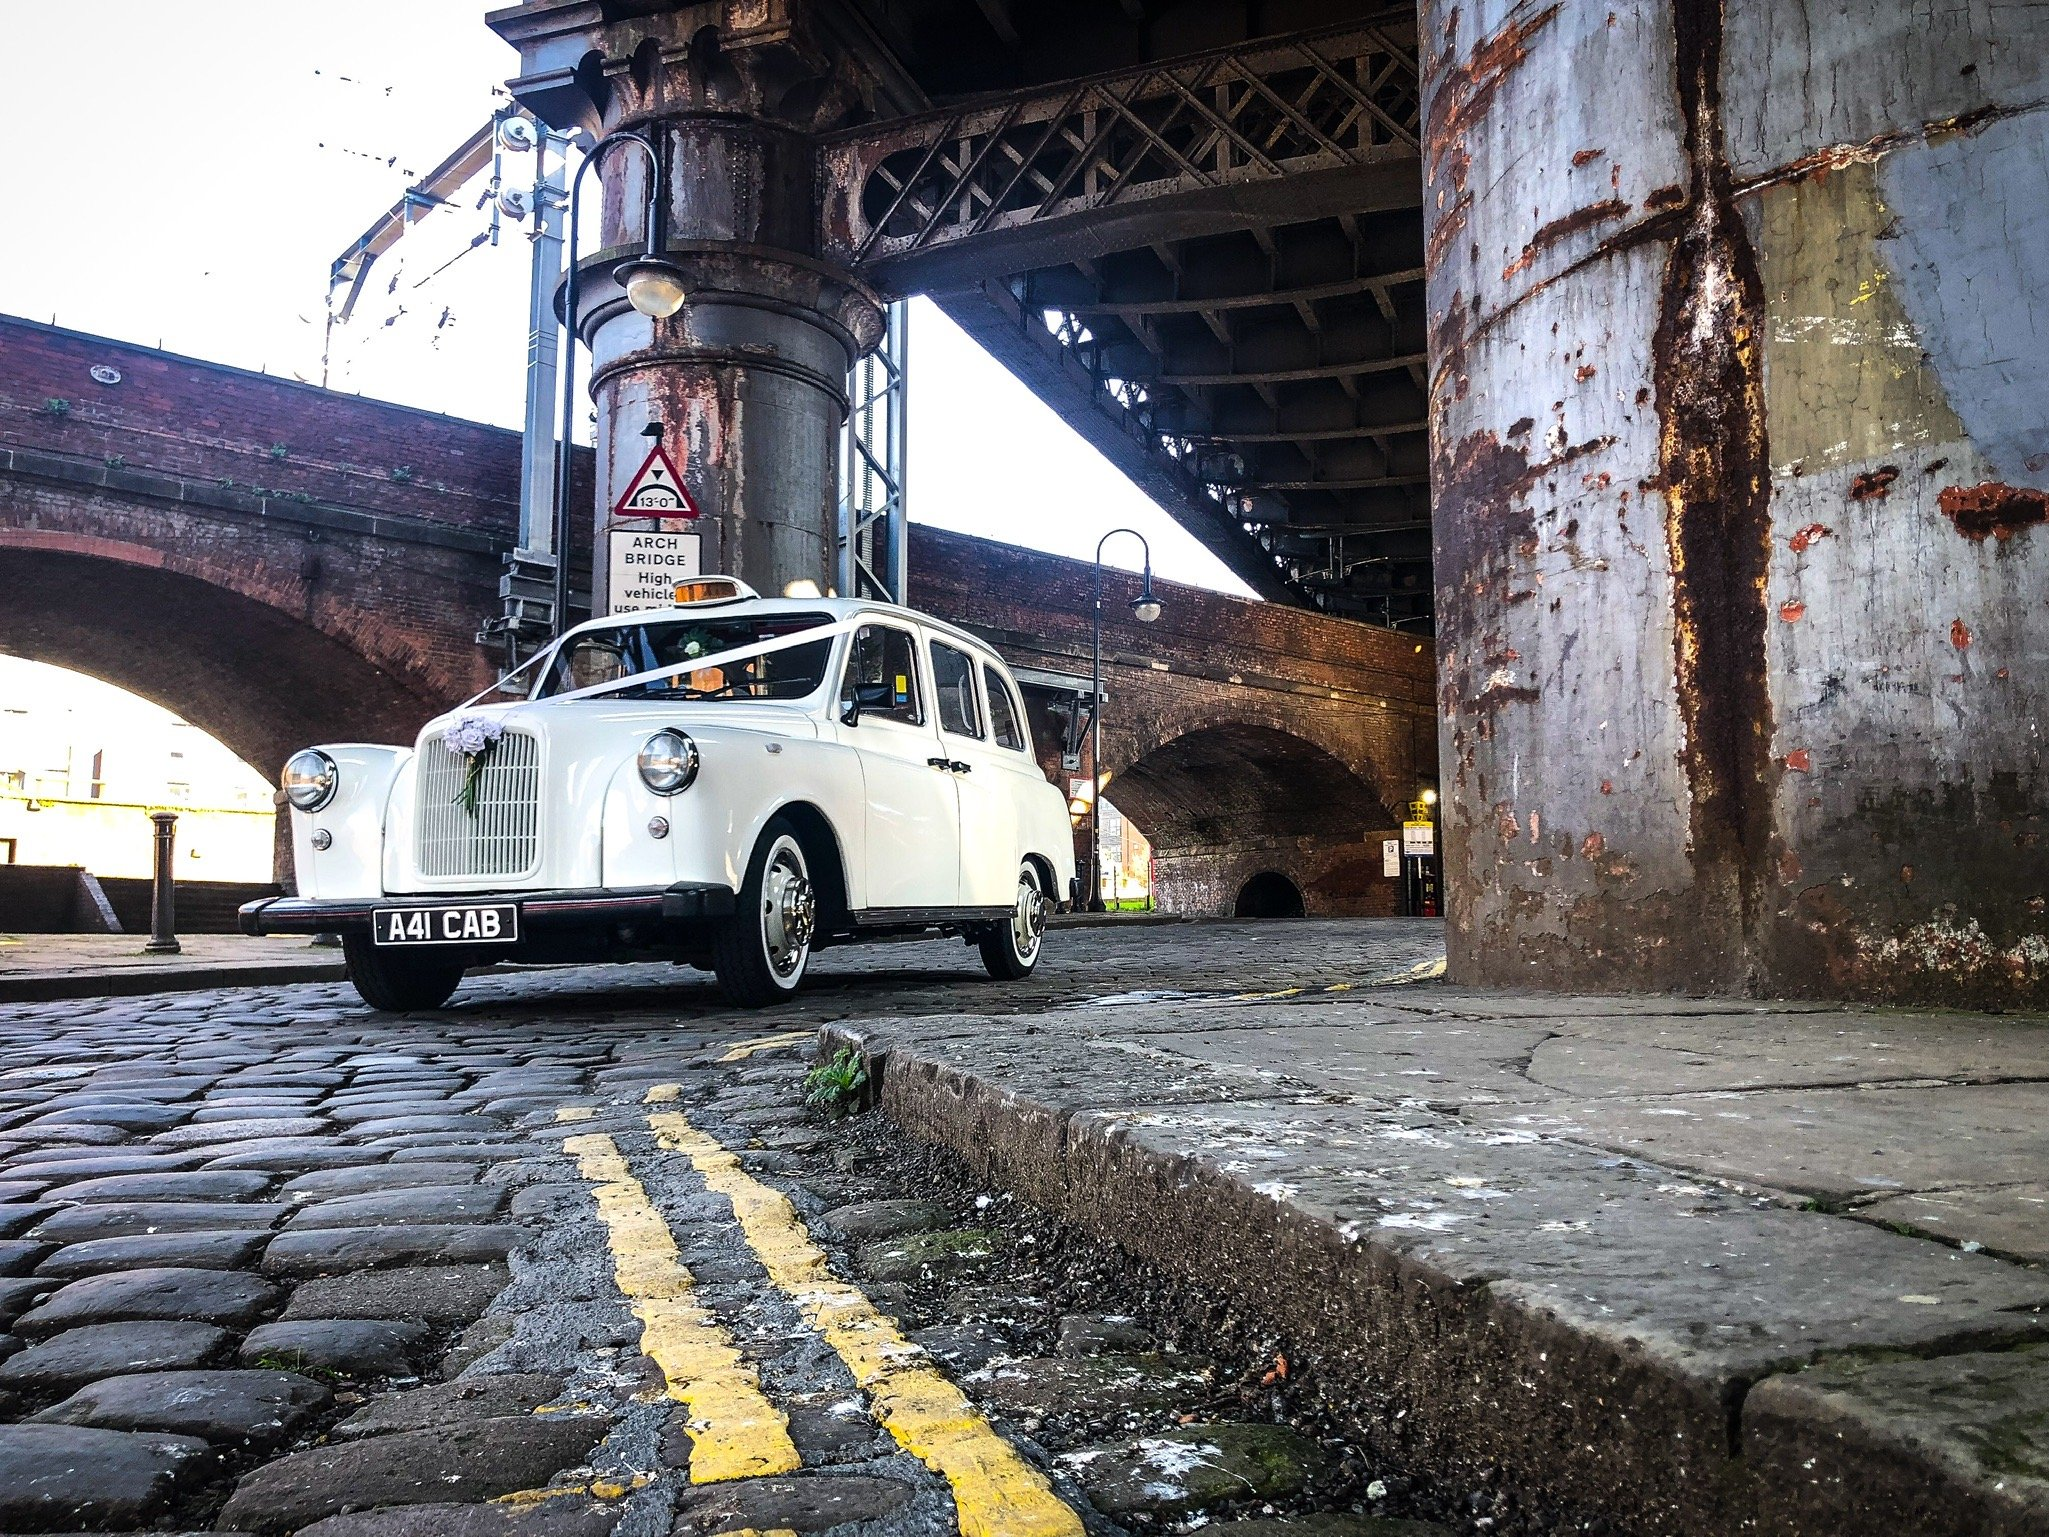 Manchester wedding cabs taxis cars